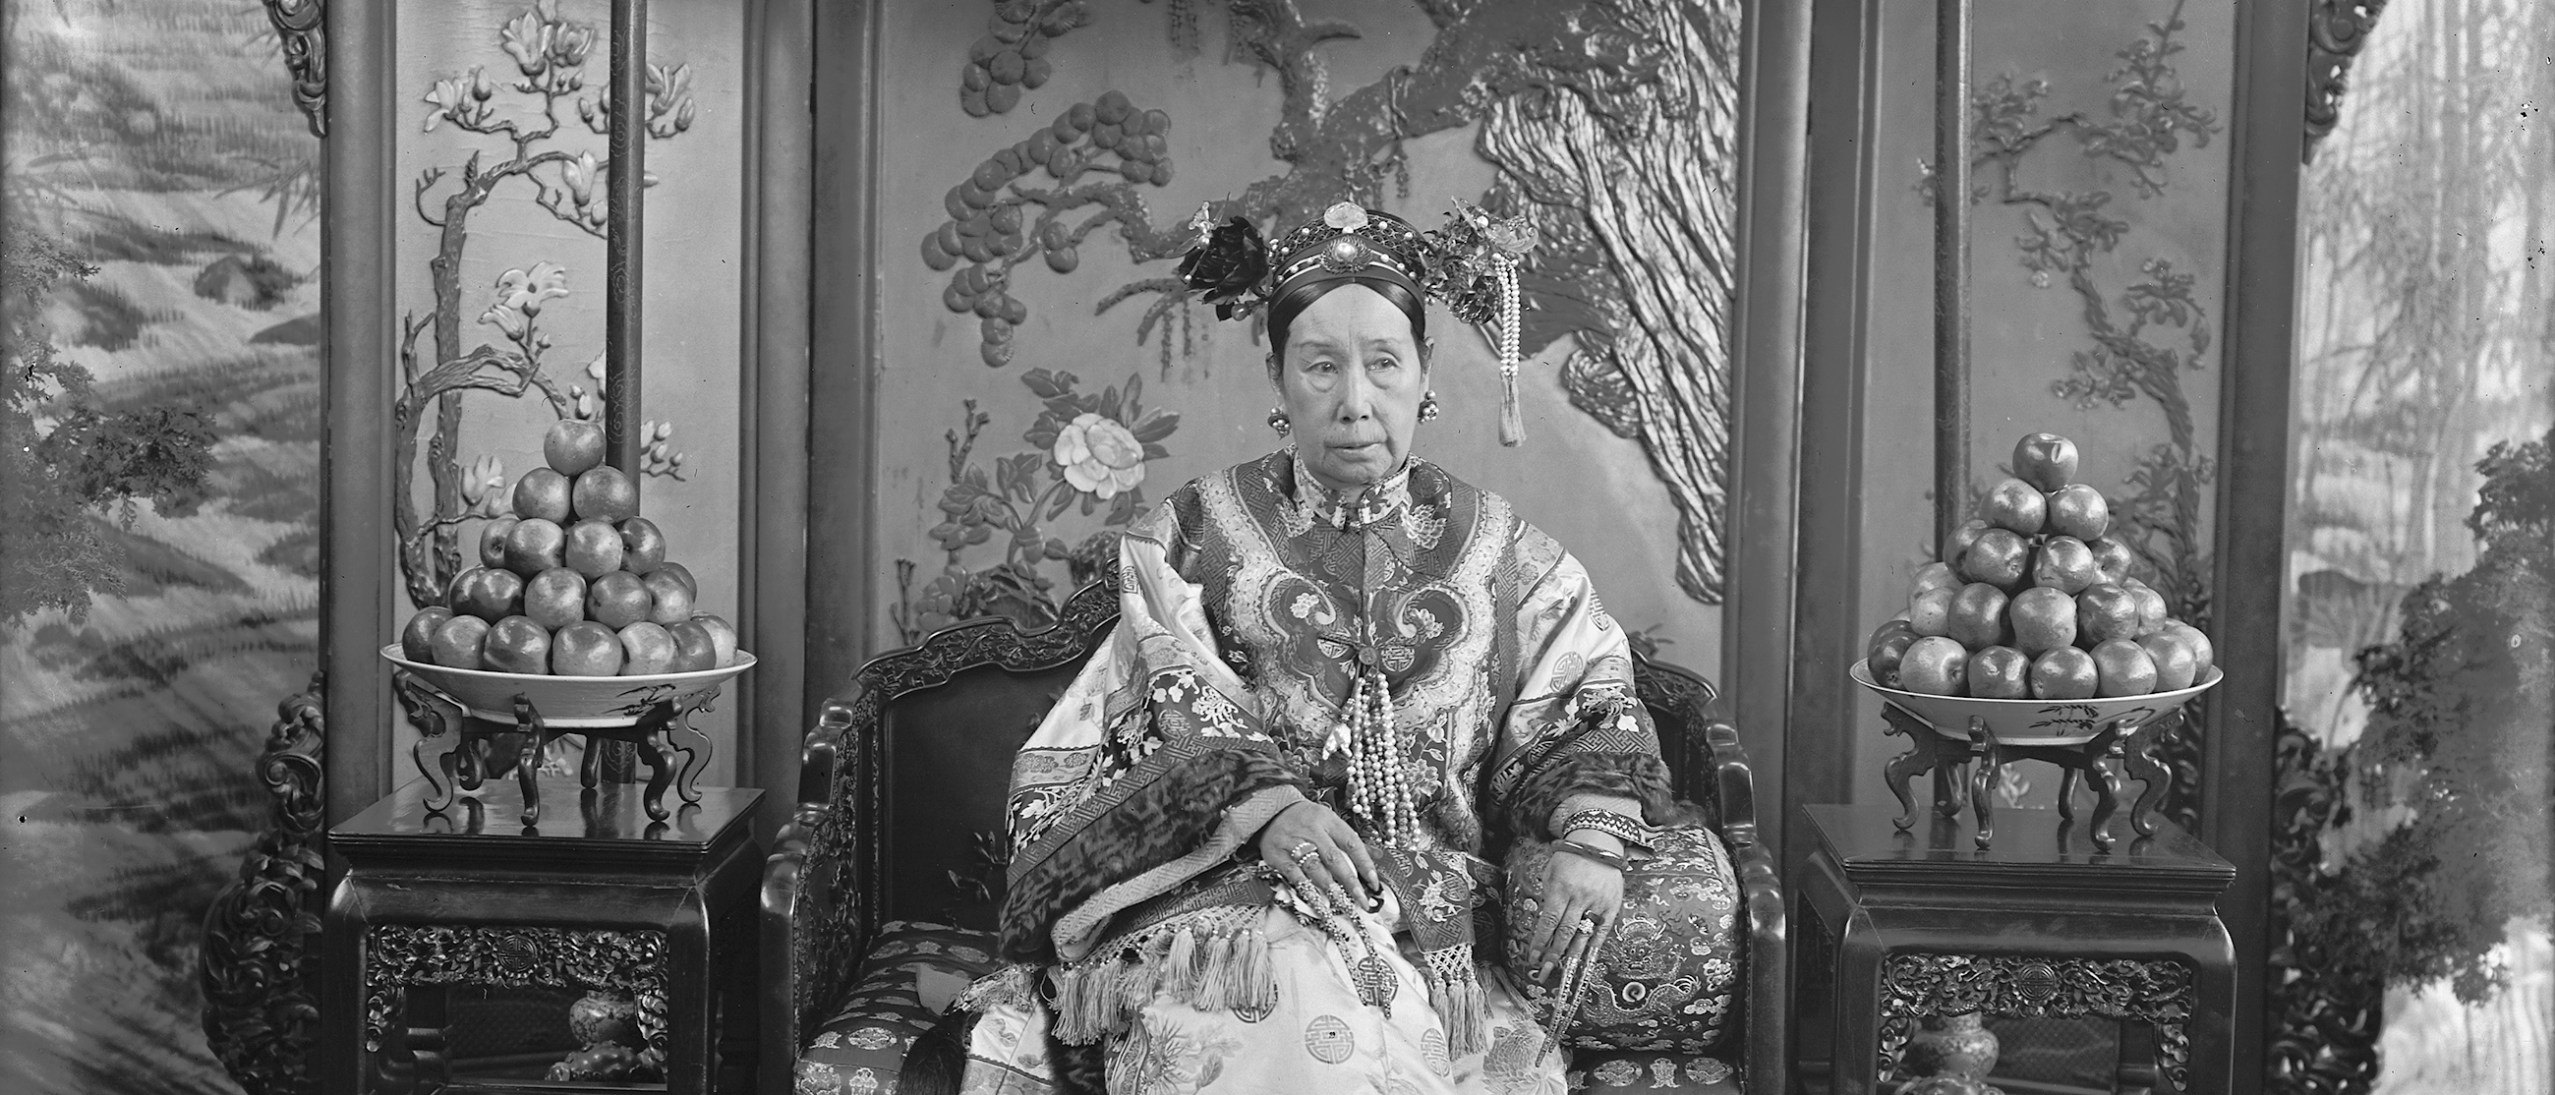 Detail image, The Empress Dowager Cixi; China, Qing dynasty, 1903-1904; Glass plate negative; SC-GR 254.